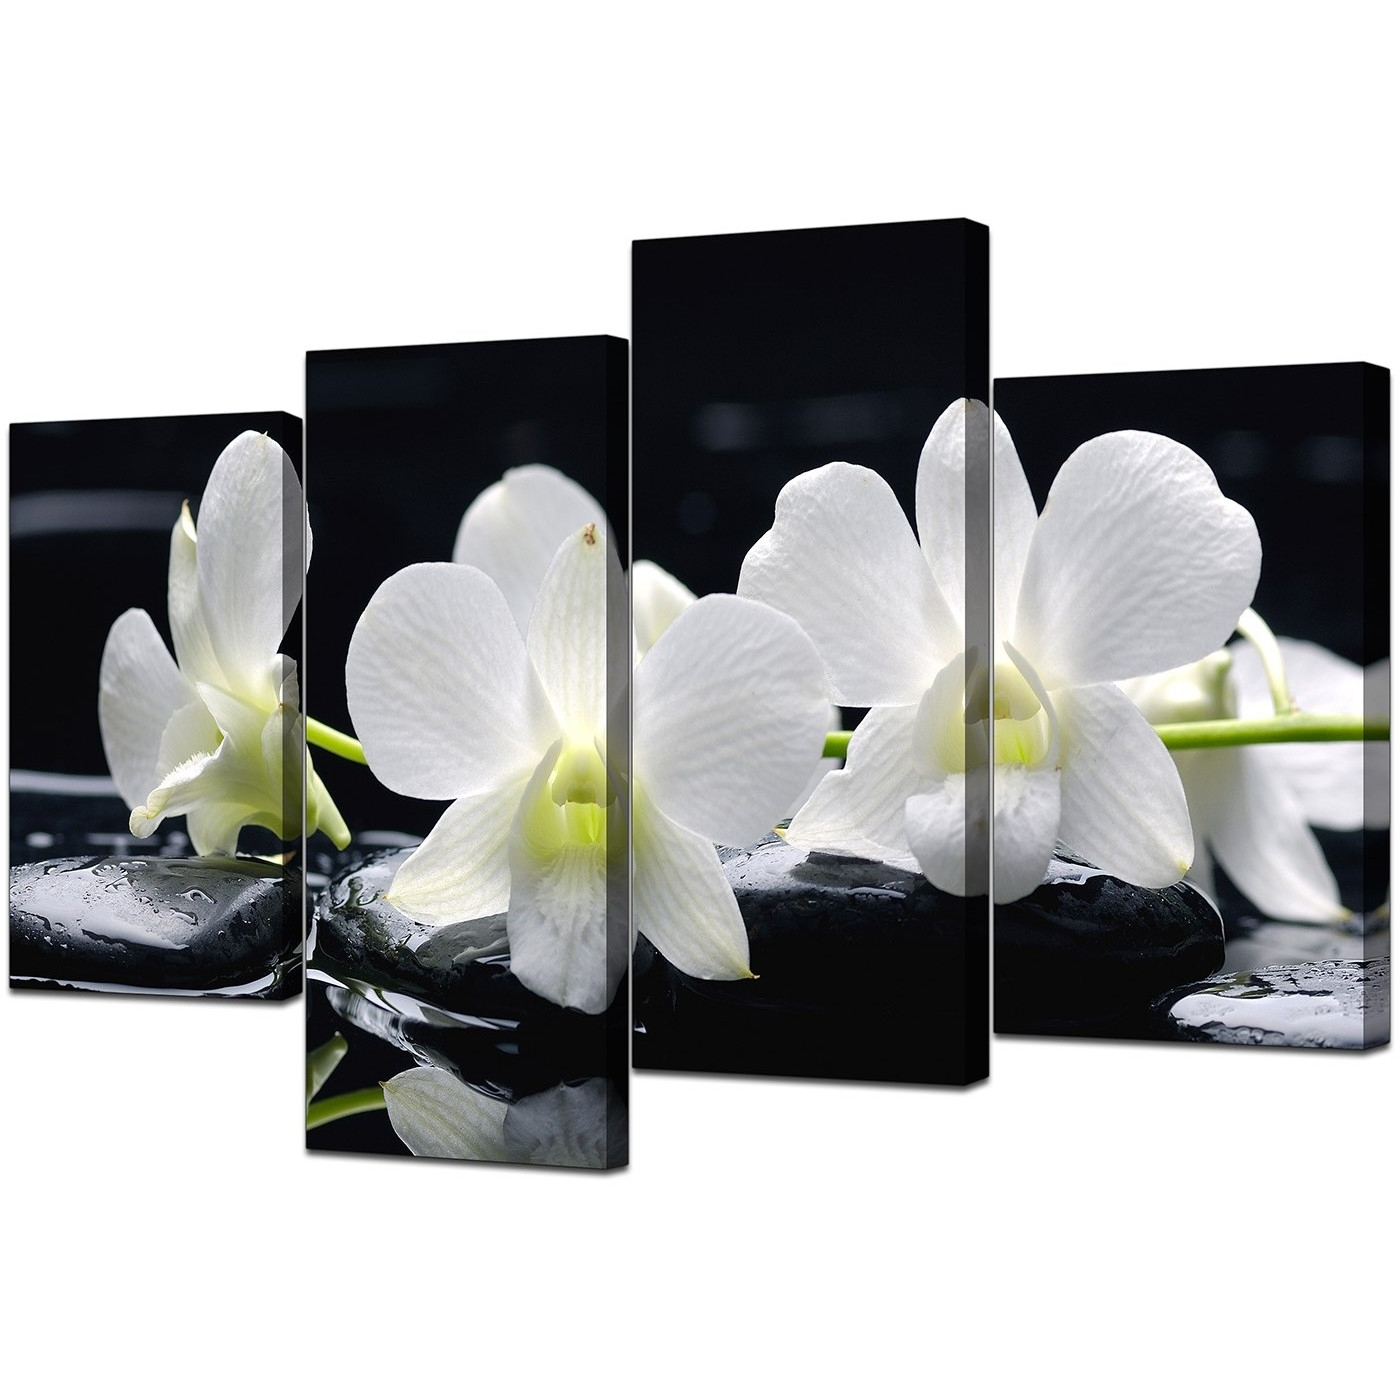 Orchid Canvas Wall Art In Well Known Canvas Wall Art Of Orchids In Black & White For Your Living Room (View 11 of 15)